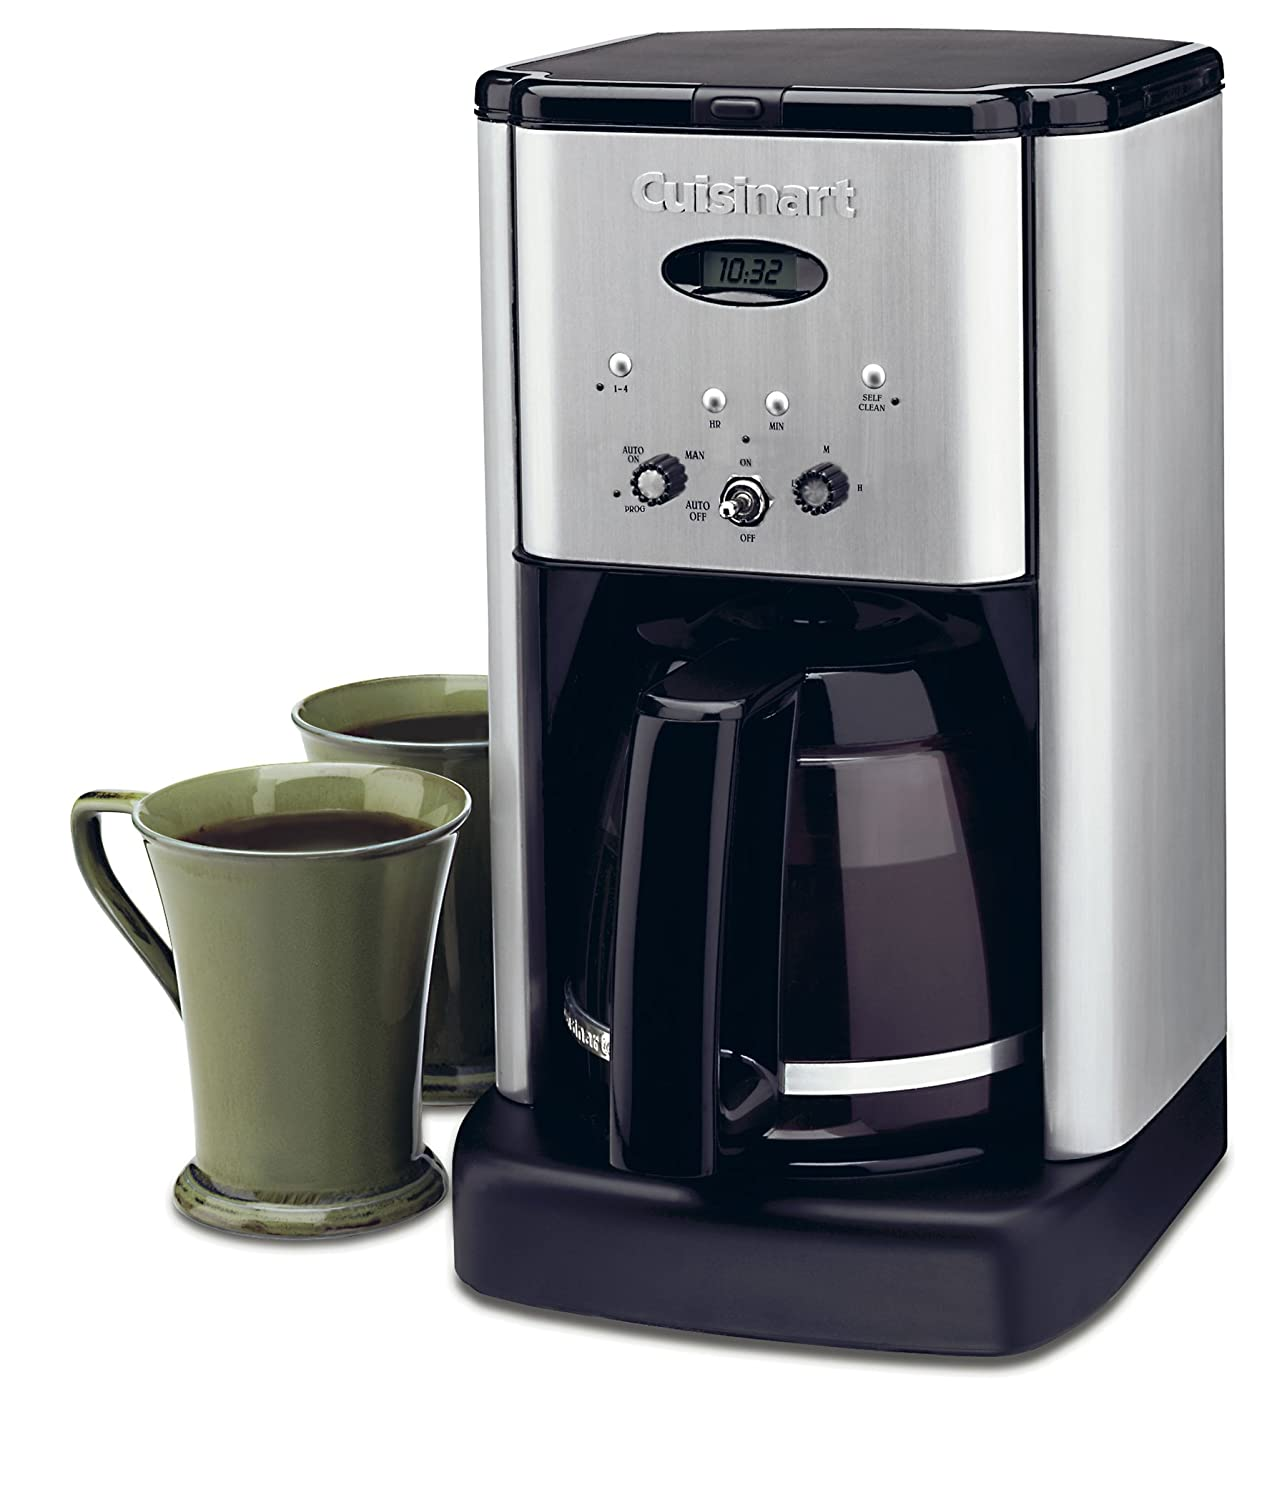 Coffee Pot For Coffee Maker : Top Rated Coffee Makers Reviews and Buying Guide - TopRatedCoffeeMakersx.com